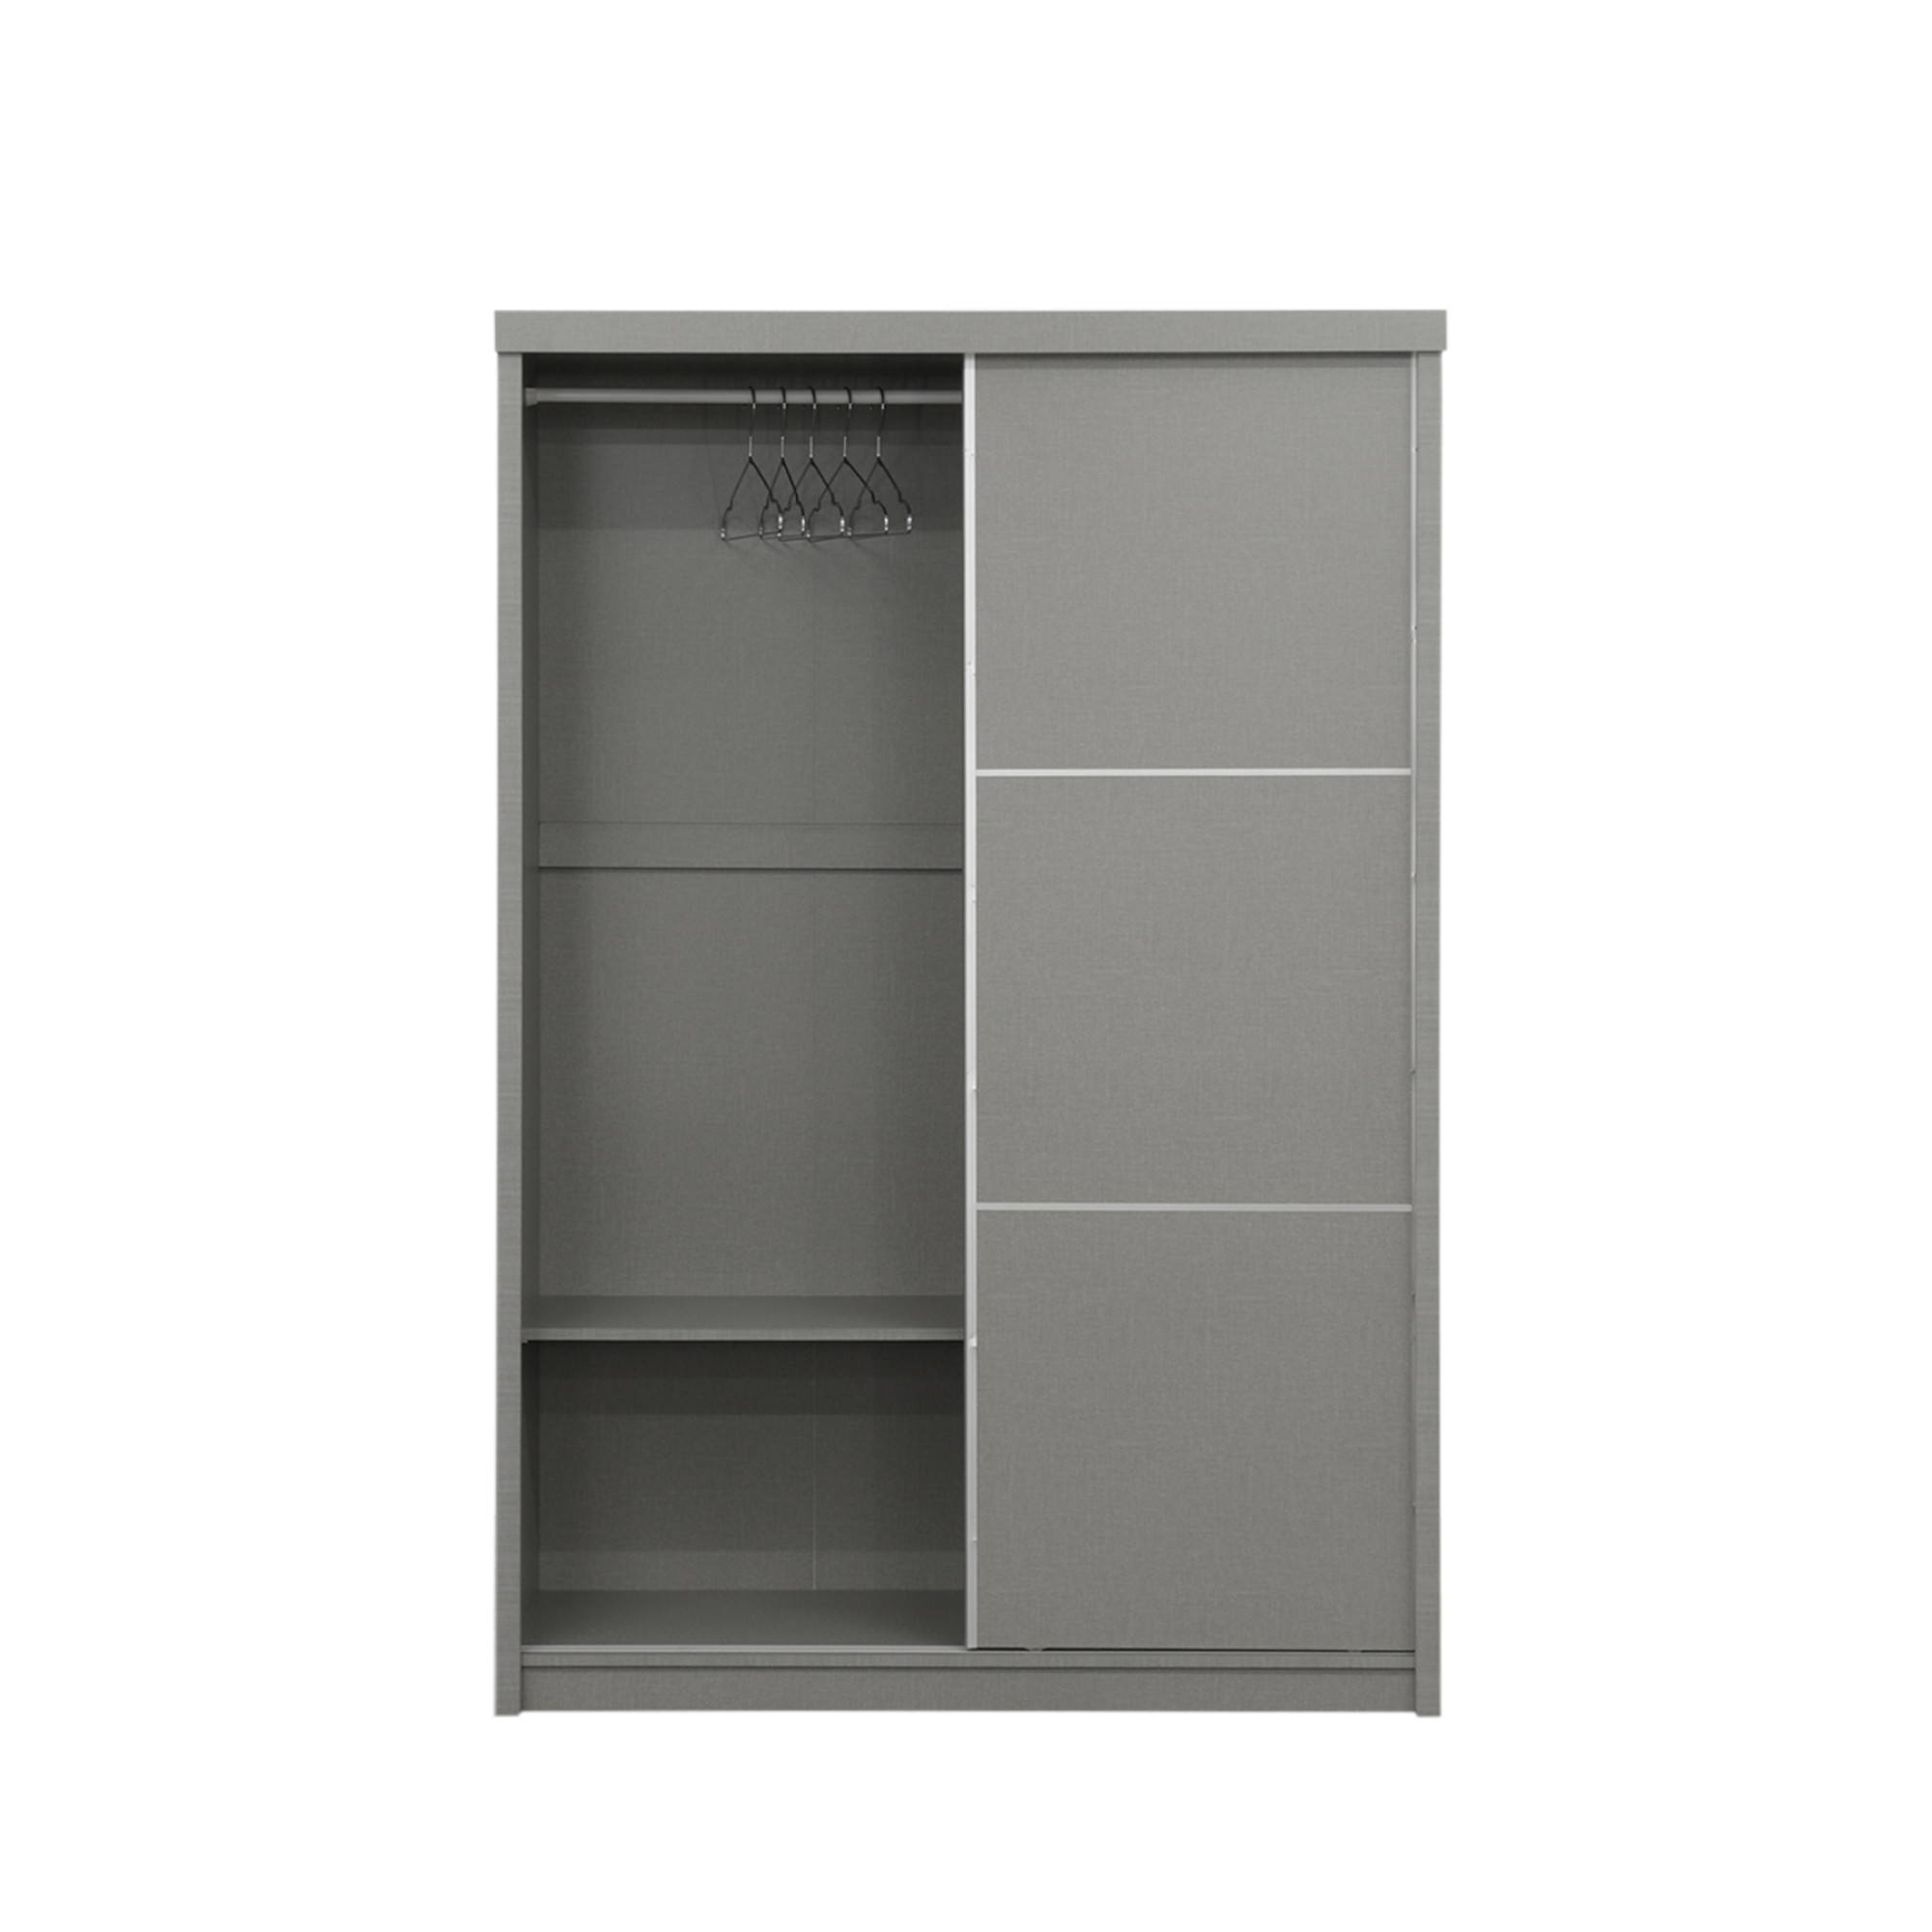 w white pack b mirror of at wardrobe select smoked prd kit door q grey mm h departments sliding premium bq diy